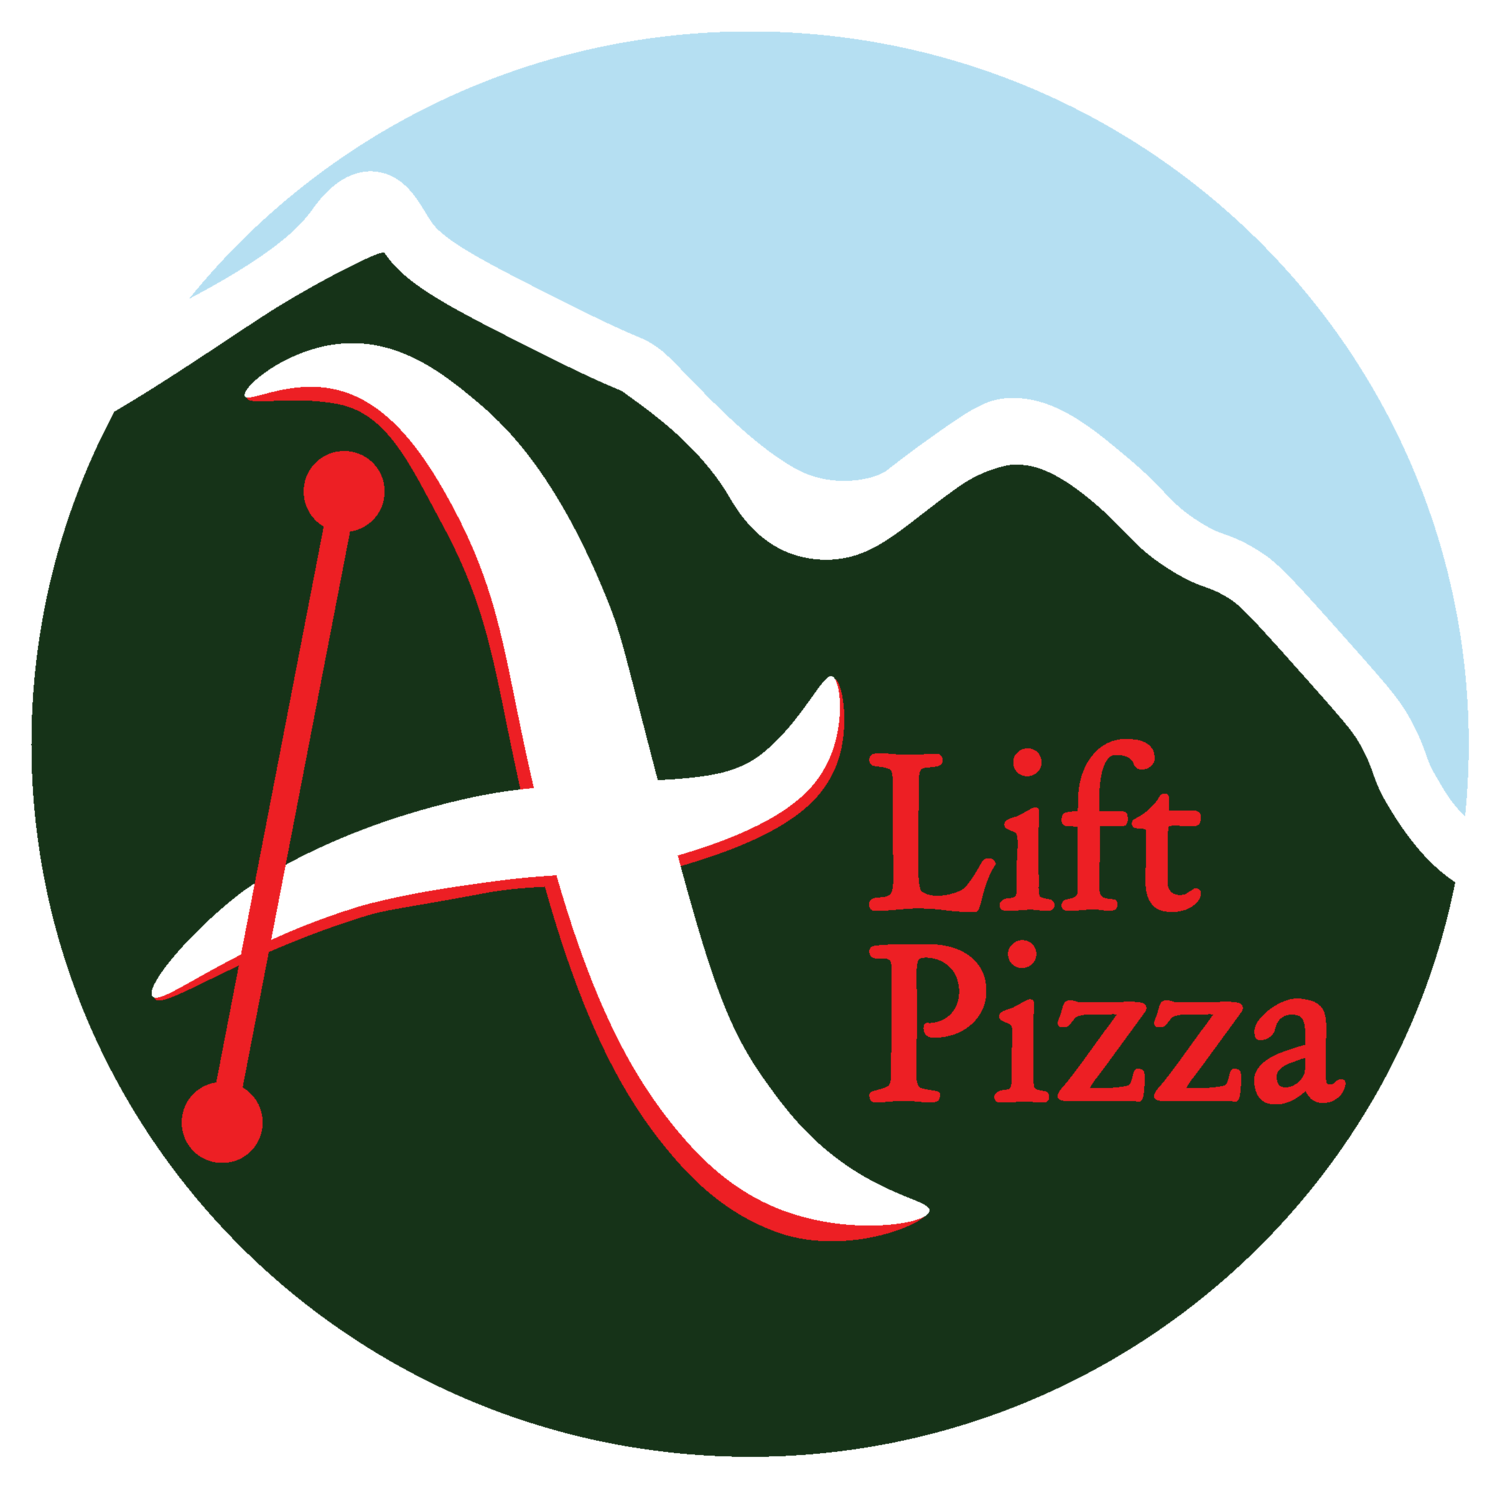 A-Lift Pizza